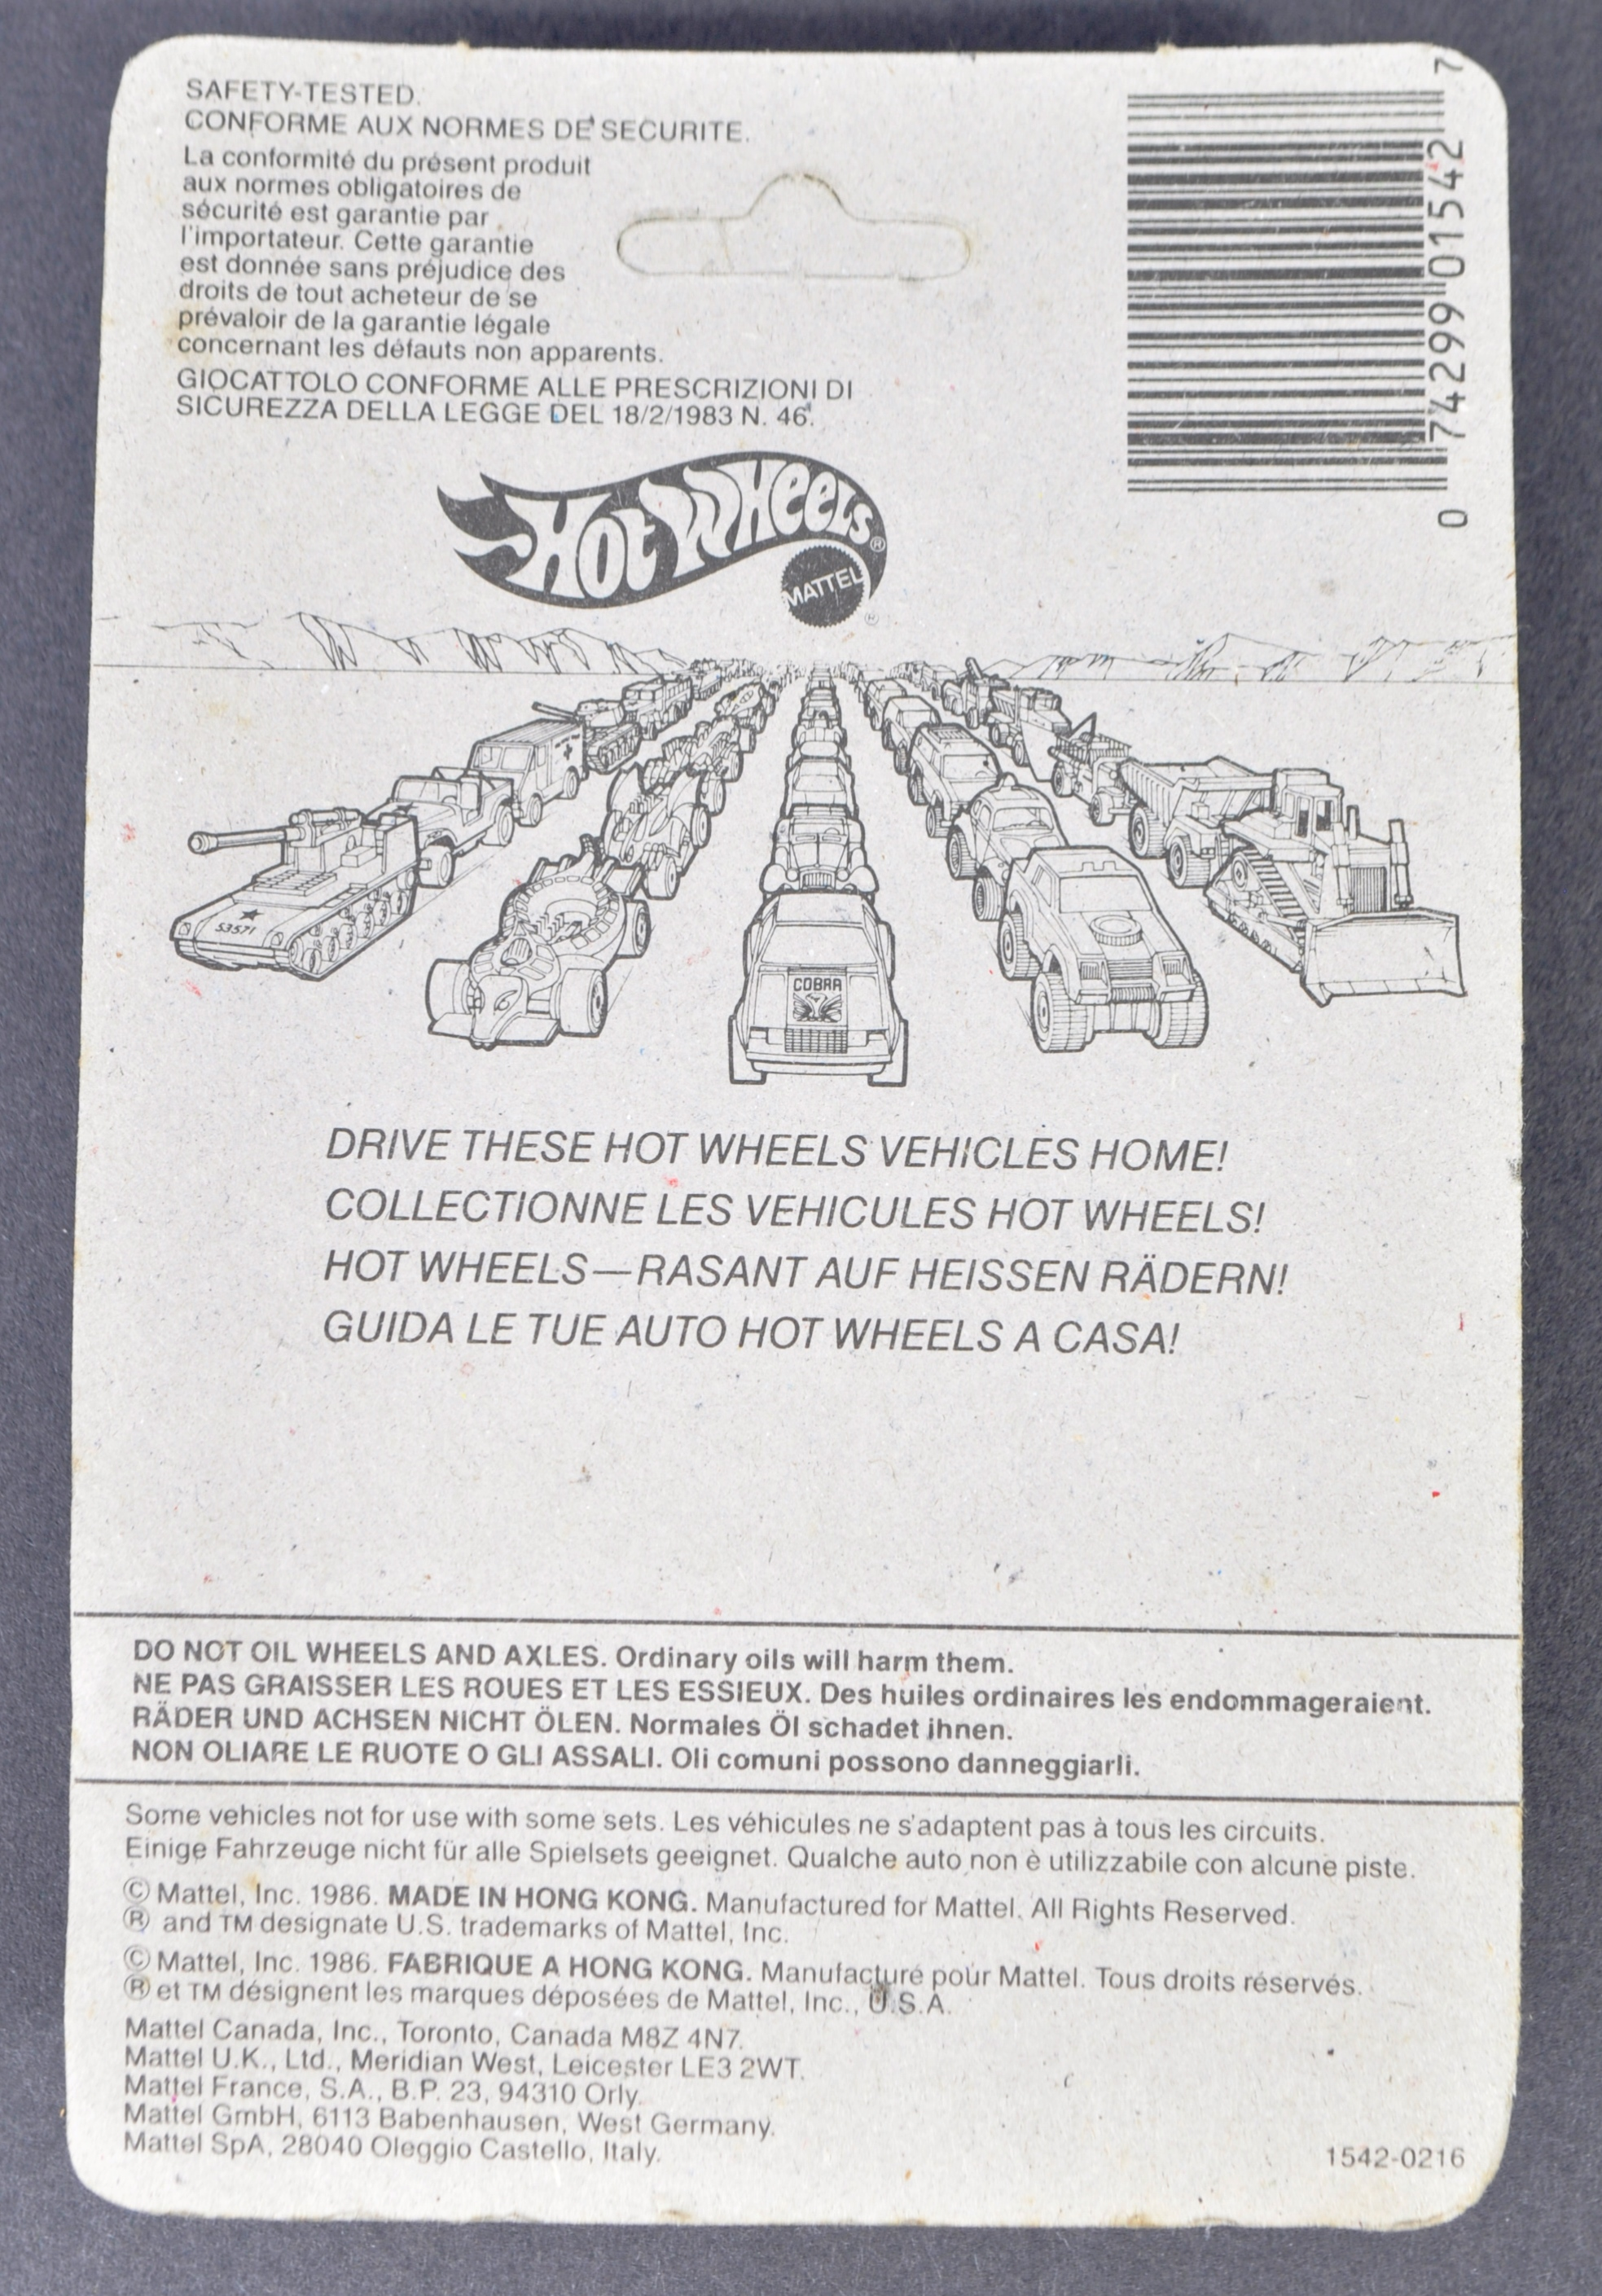 COLLECTION OF X7 VINTAGE MATTELL HOTWHEELS DIECAST CARS - Image 6 of 6